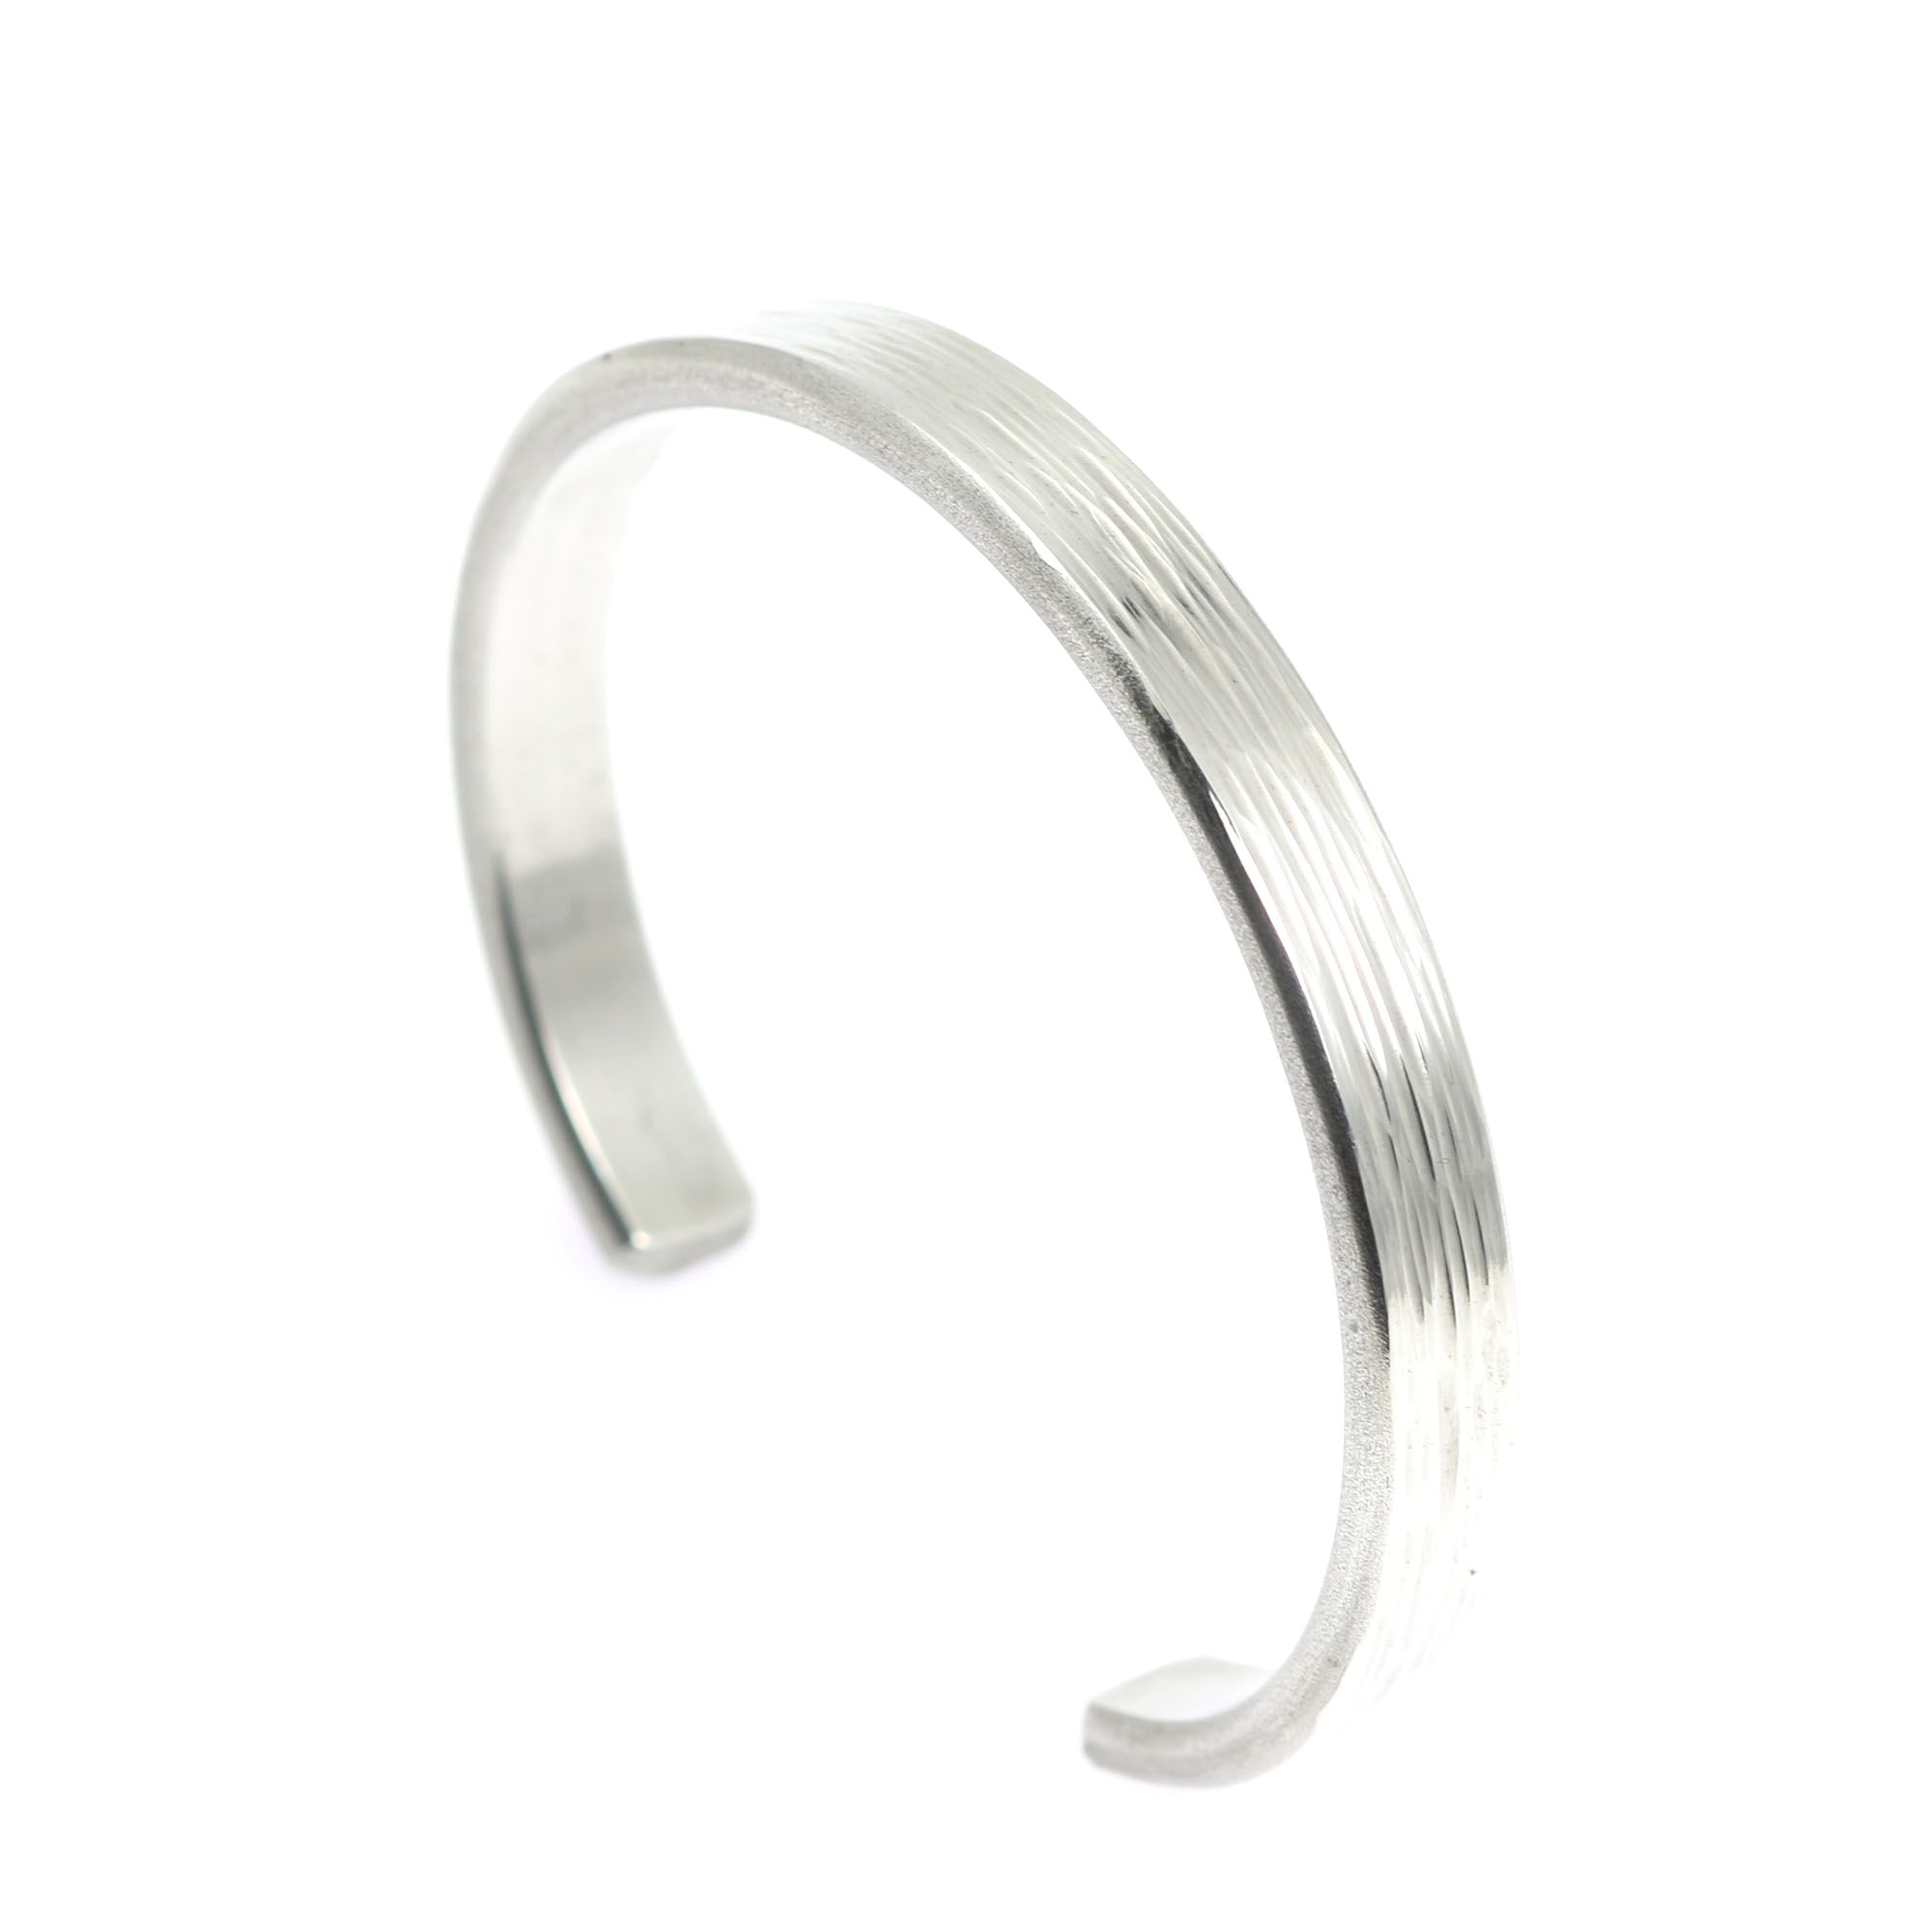 New exceptional mm thin bark aluminum cuff bracelet offered on